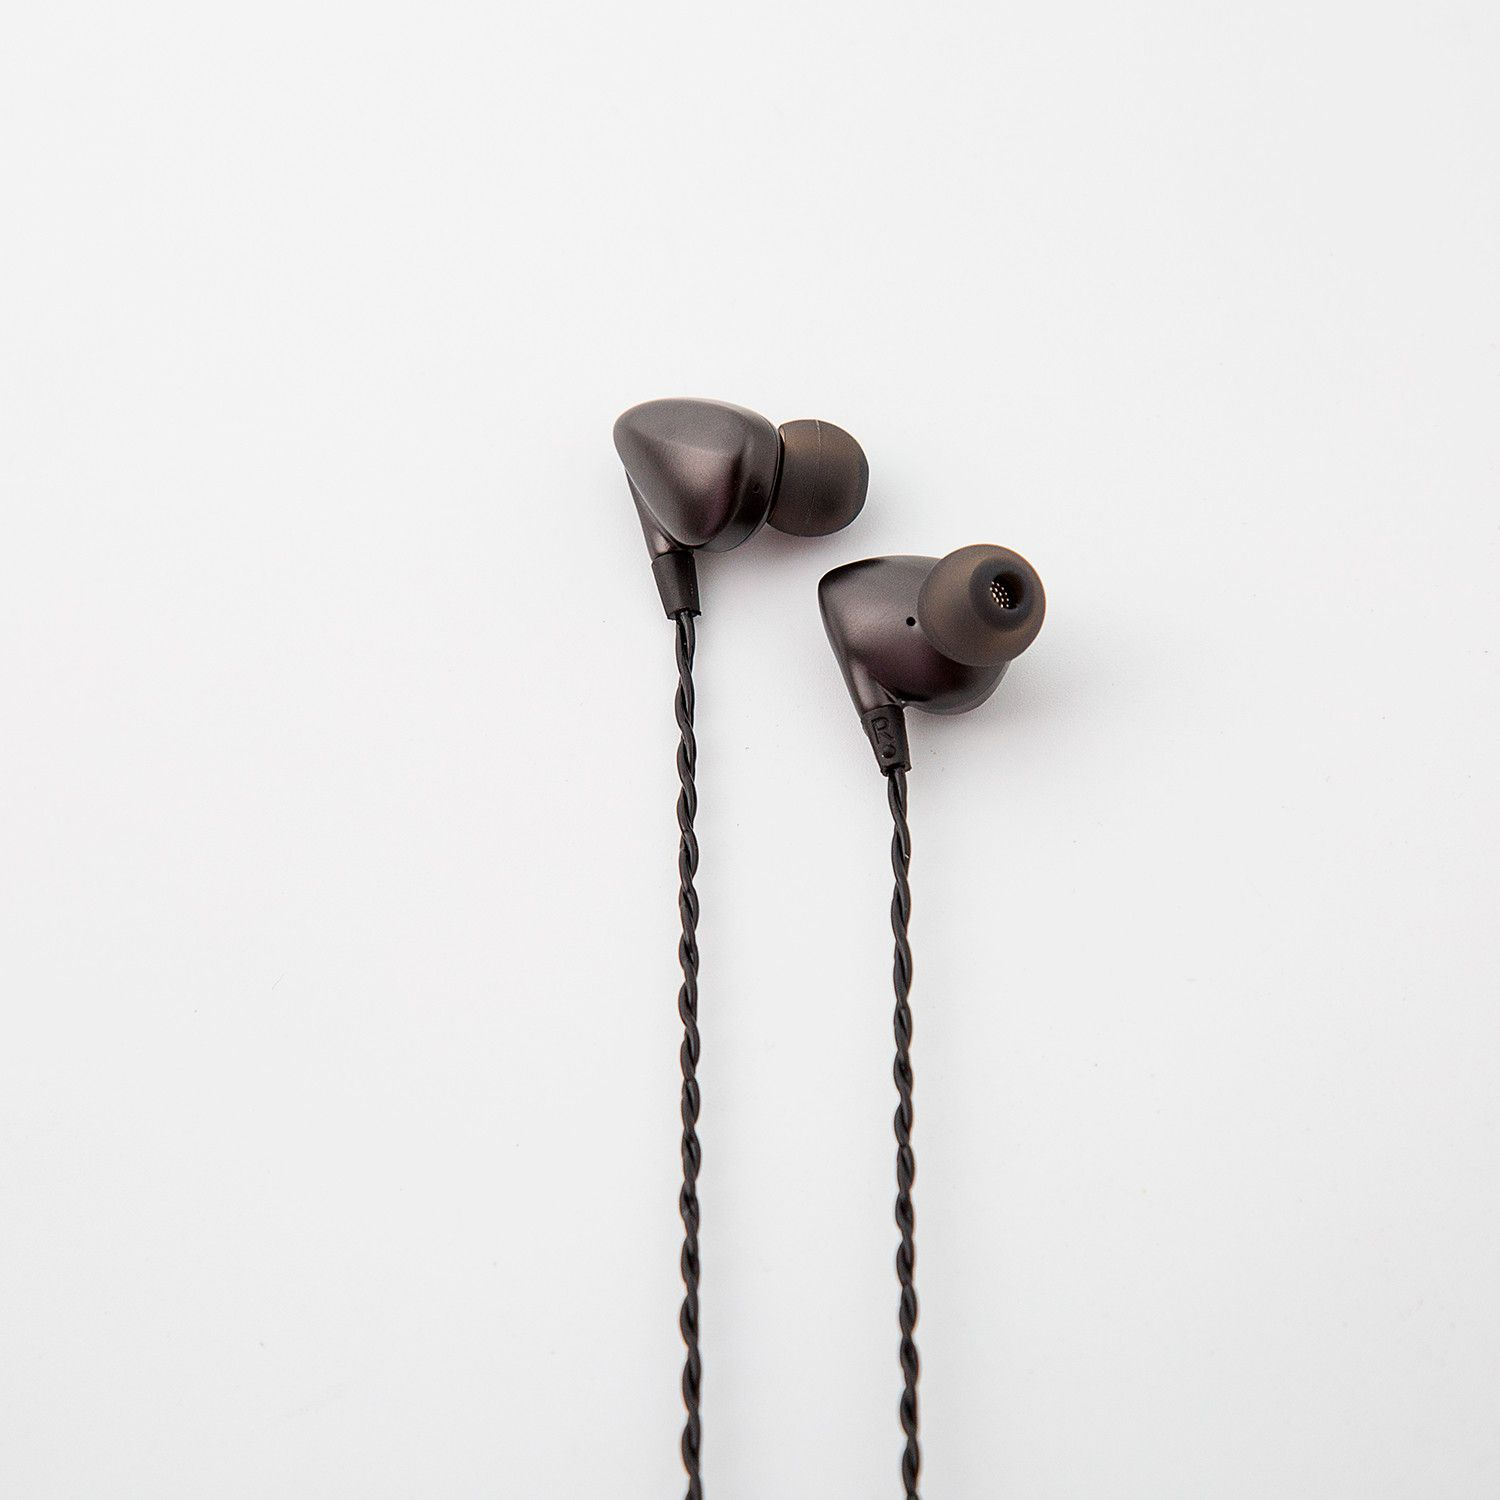 Seeds High Resolution Dynamic Earbuds Earbuds, High